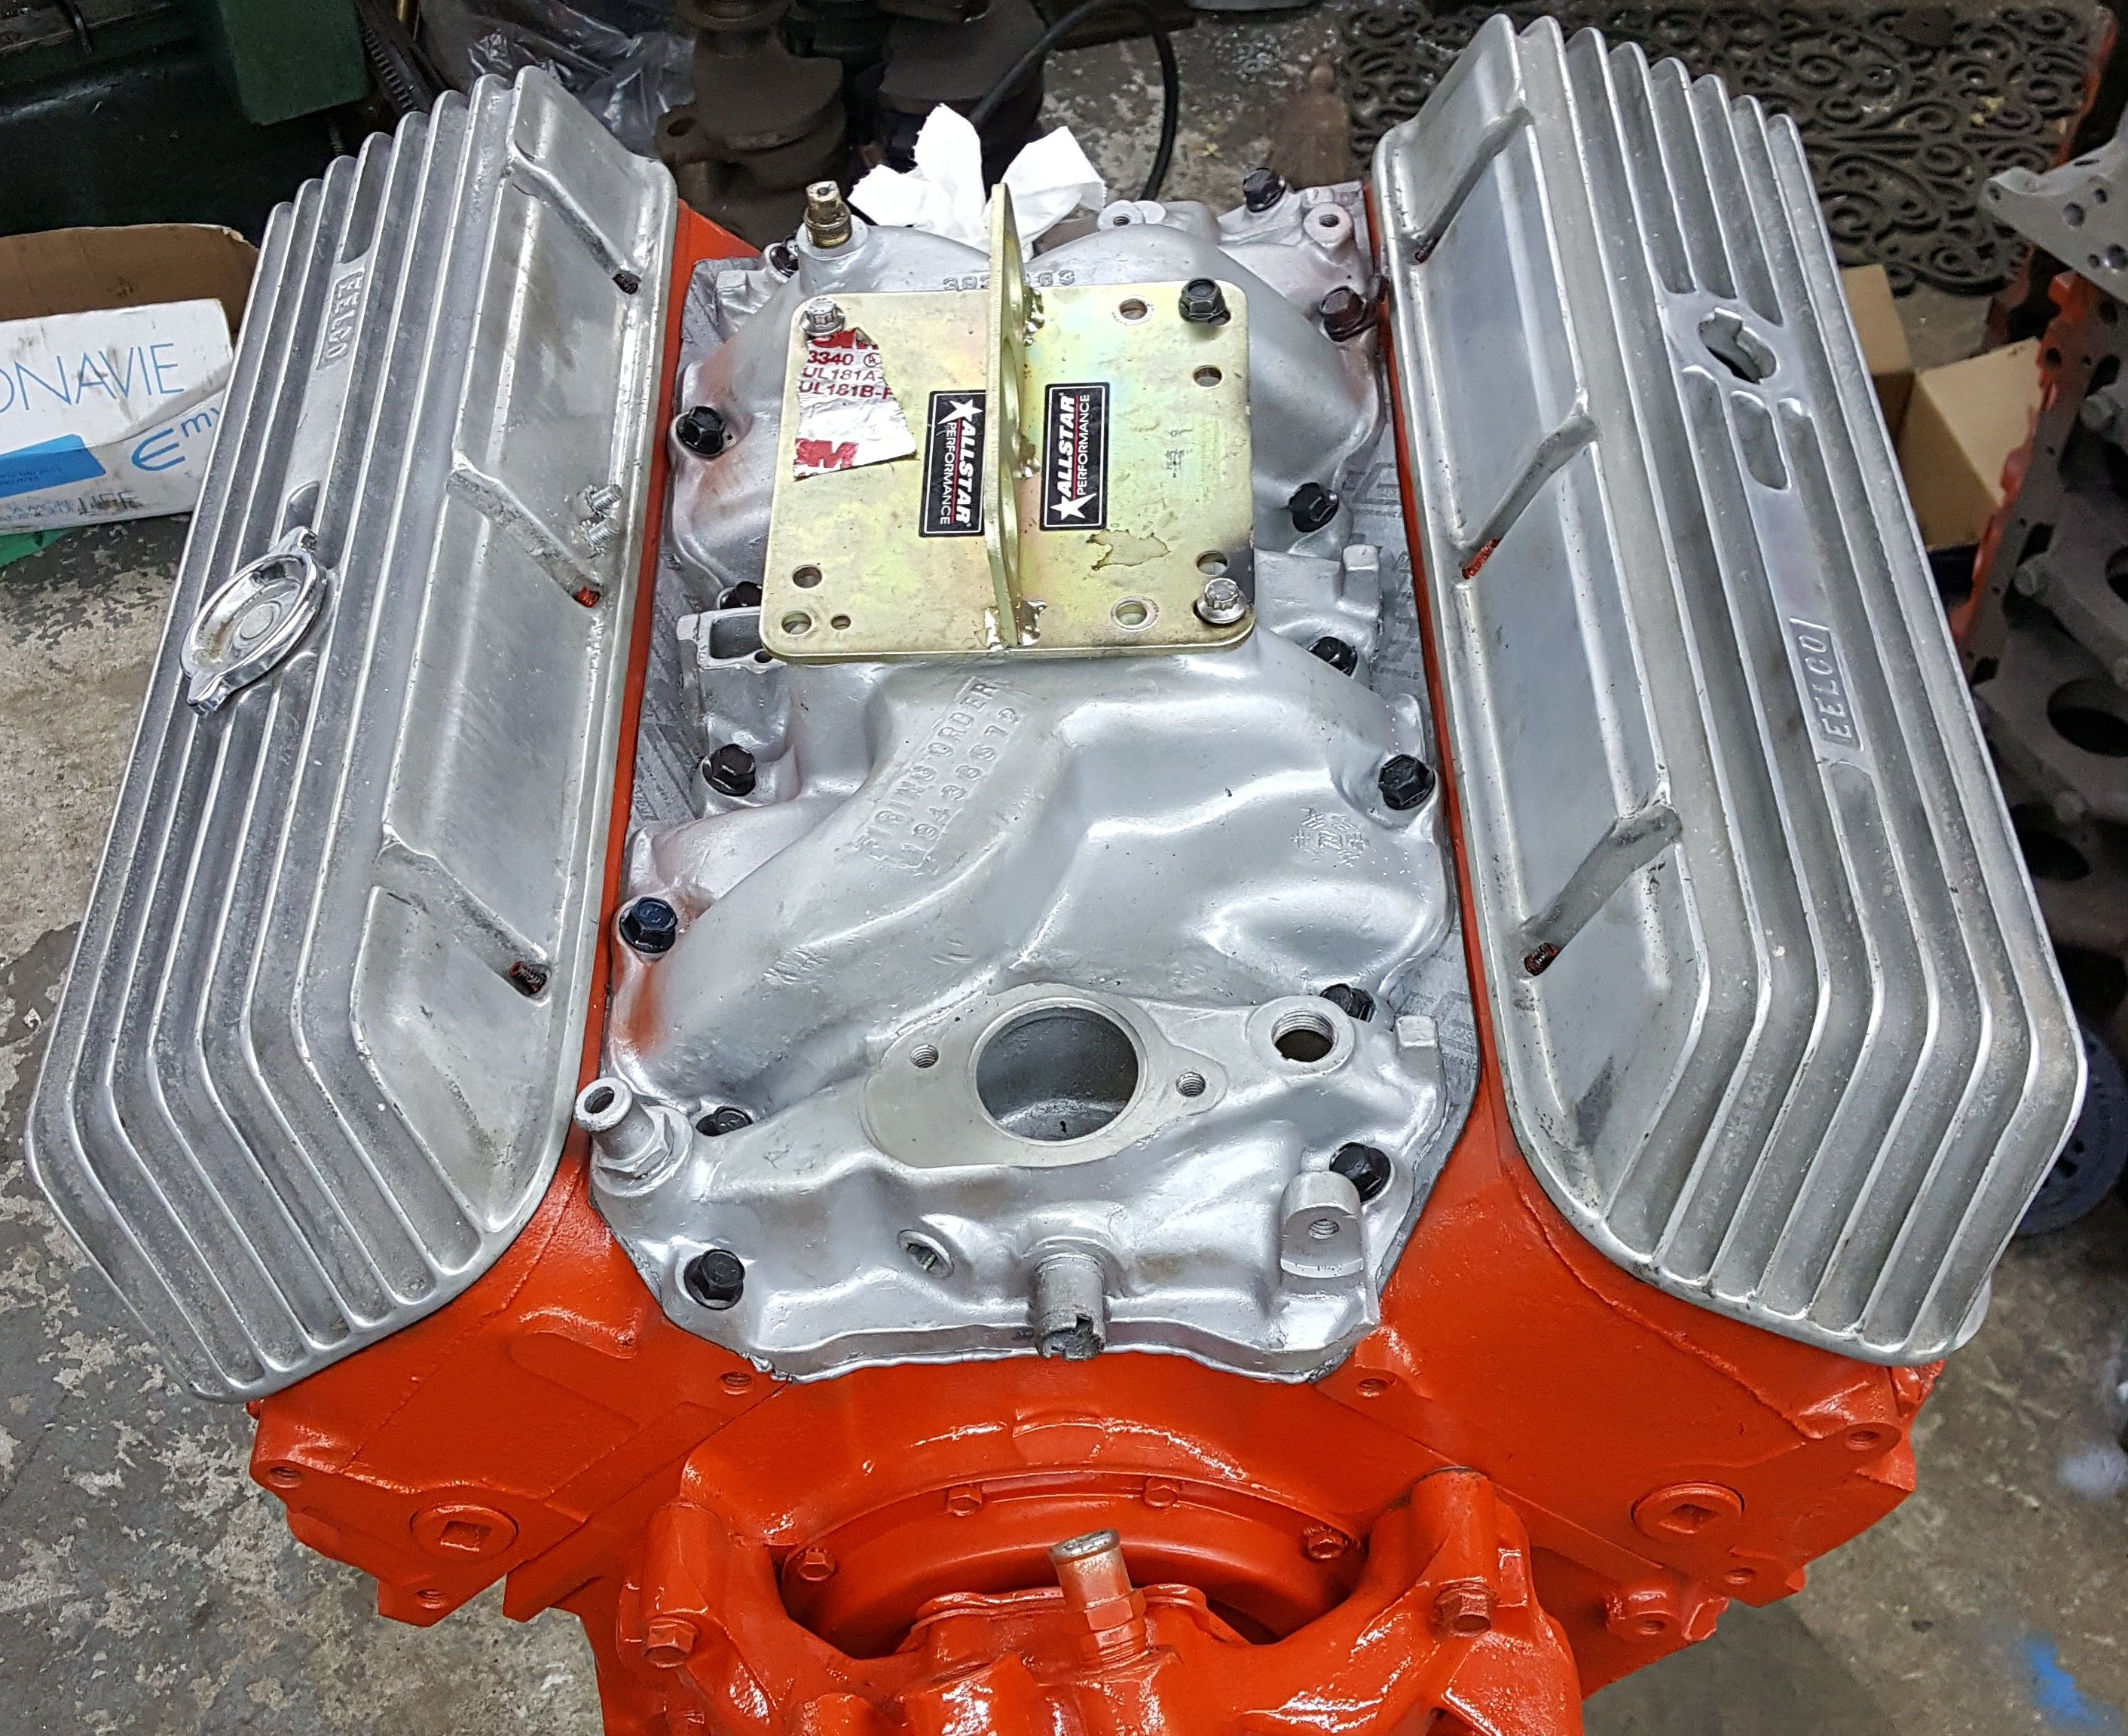 hight resolution of 1995 chevy impala ss engine diagram further big block chevy oval 1995 chevy impala ss engine diagram further big block chevy oval port